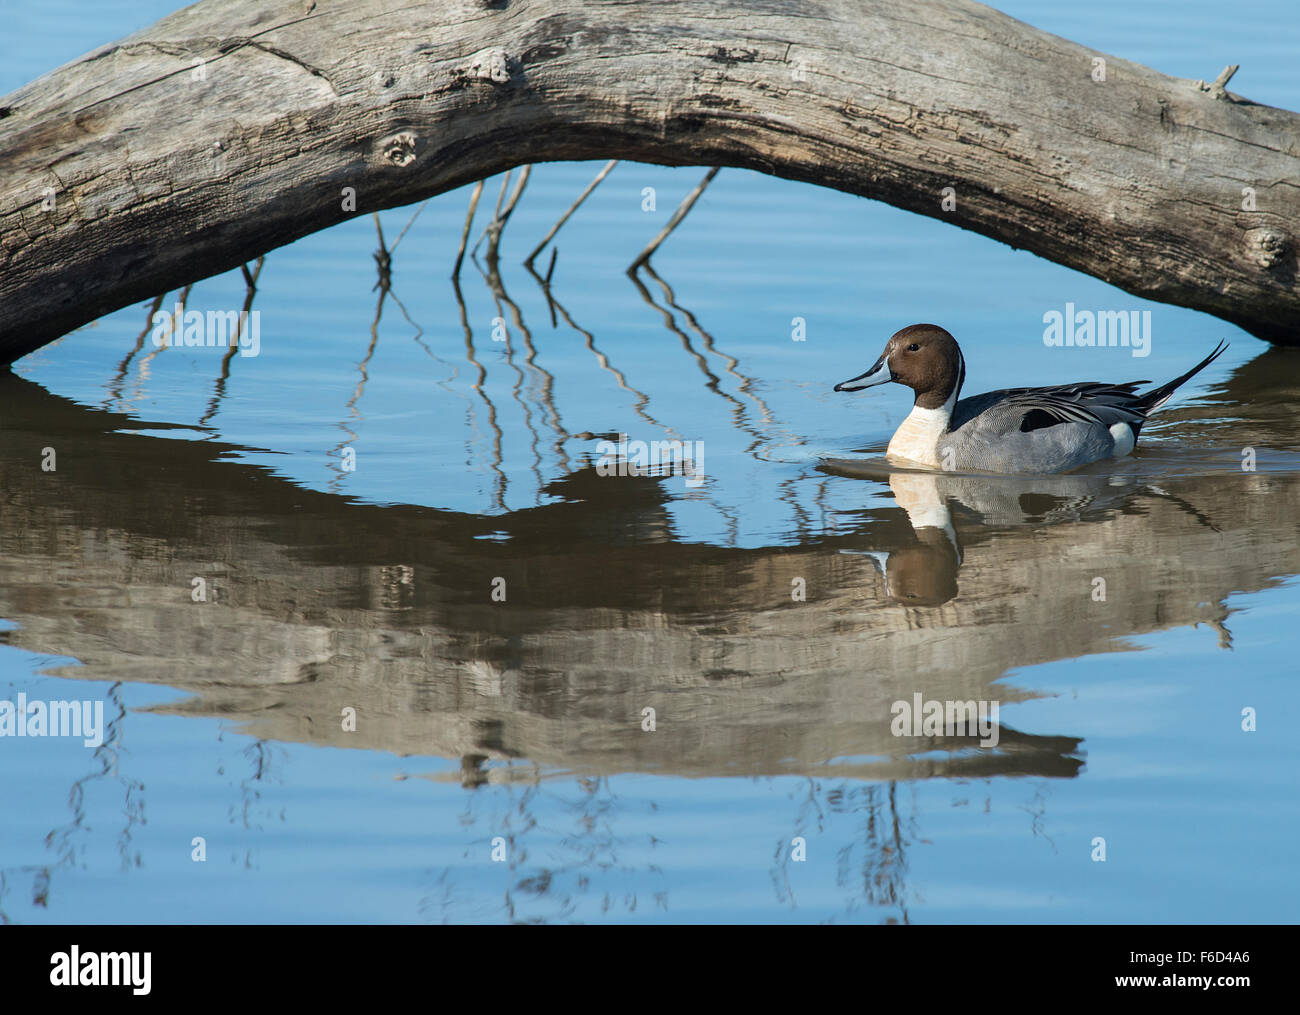 Northern Pintail (Anas acuta) swimming under arched log - Stock Image